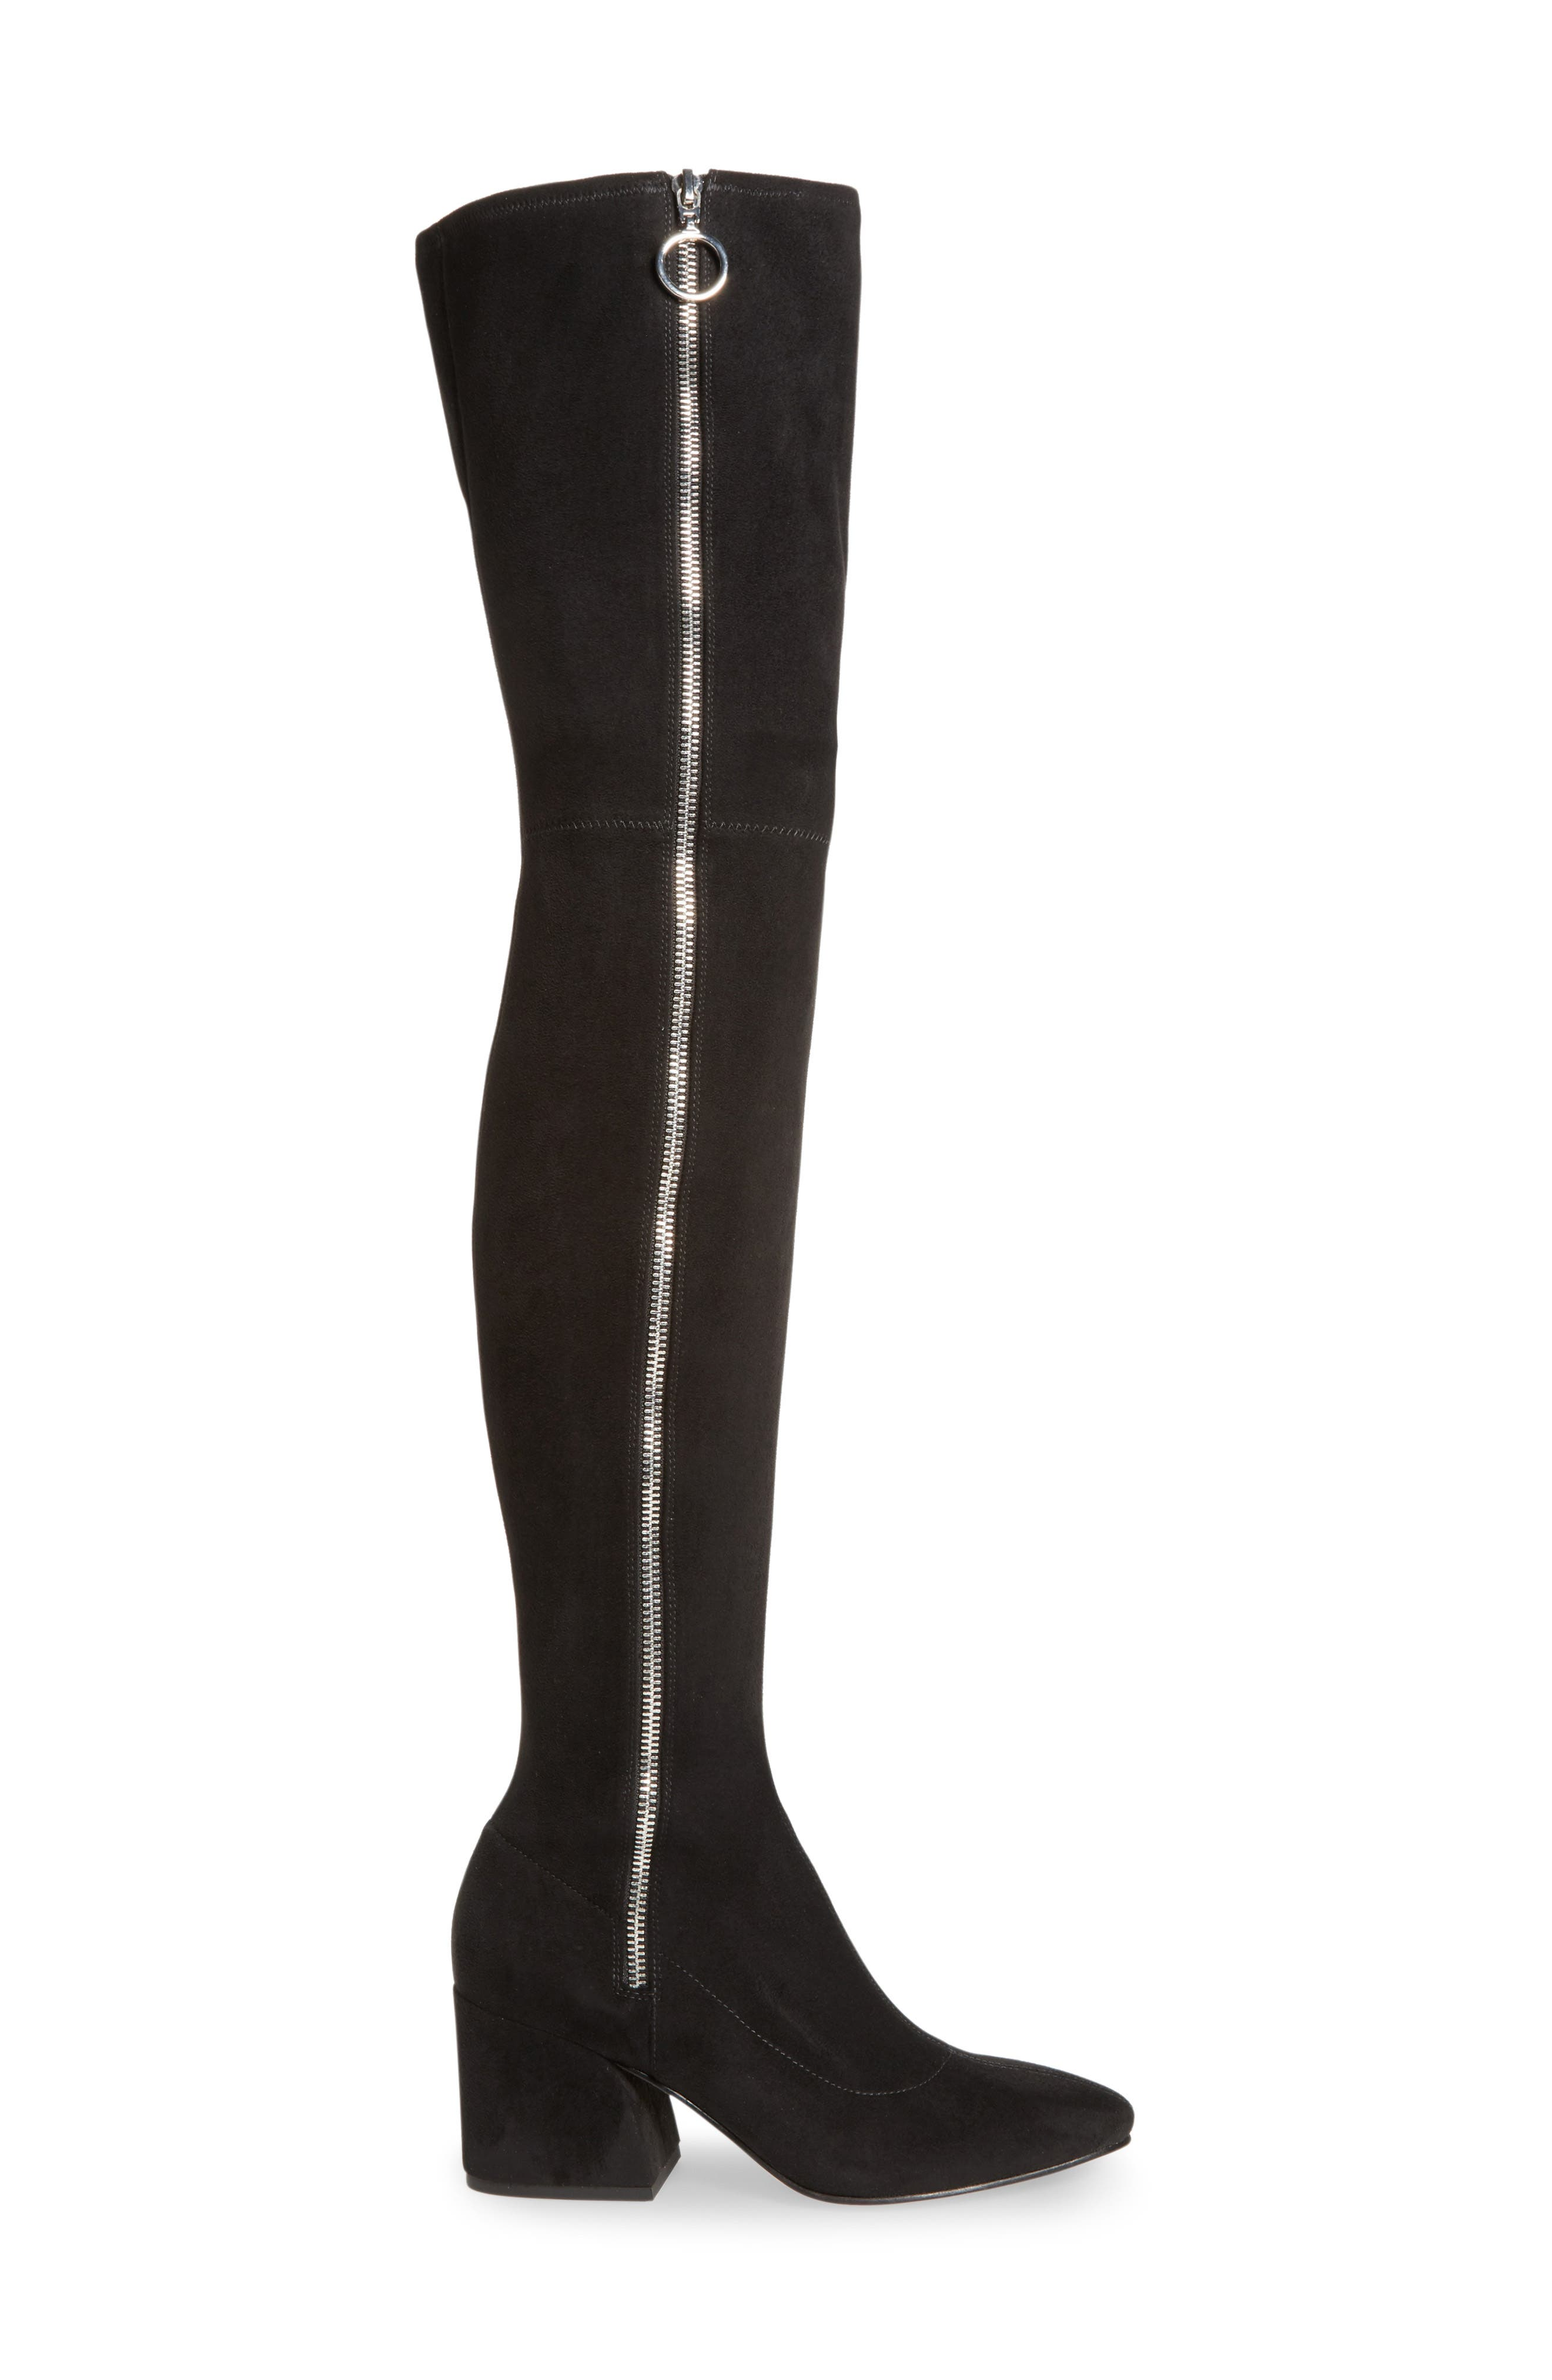 Vix Thigh High Boot,                             Alternate thumbnail 3, color,                             001